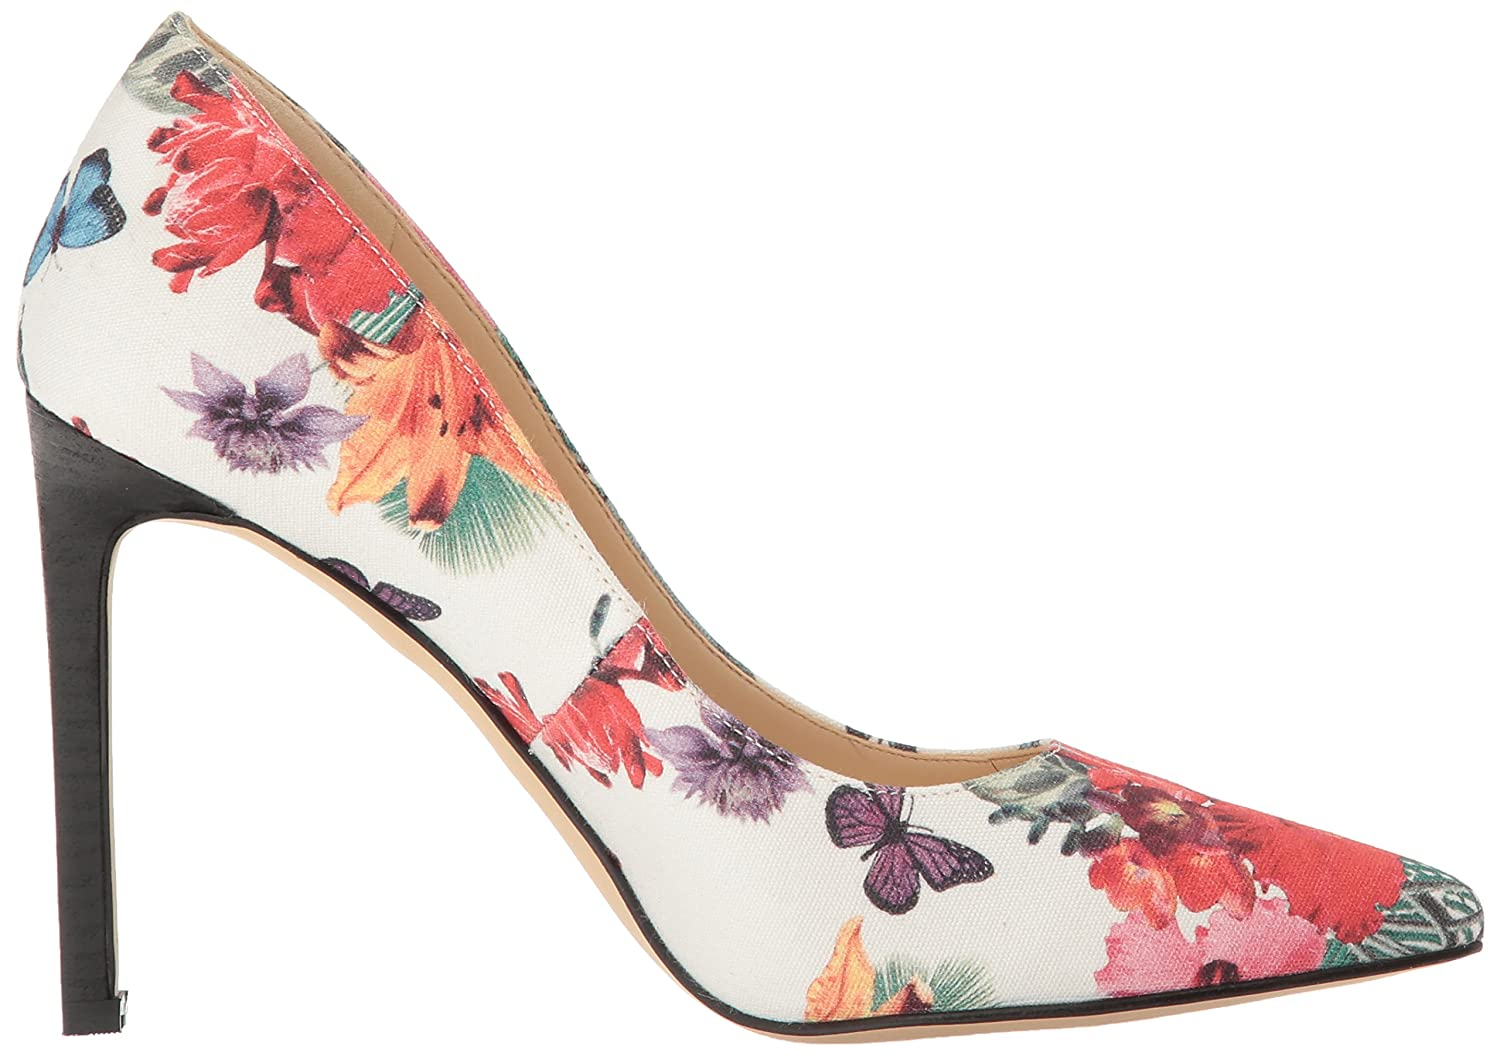 Nine West Frauen Frauen West Pumps Off Weiß Floral 778e69